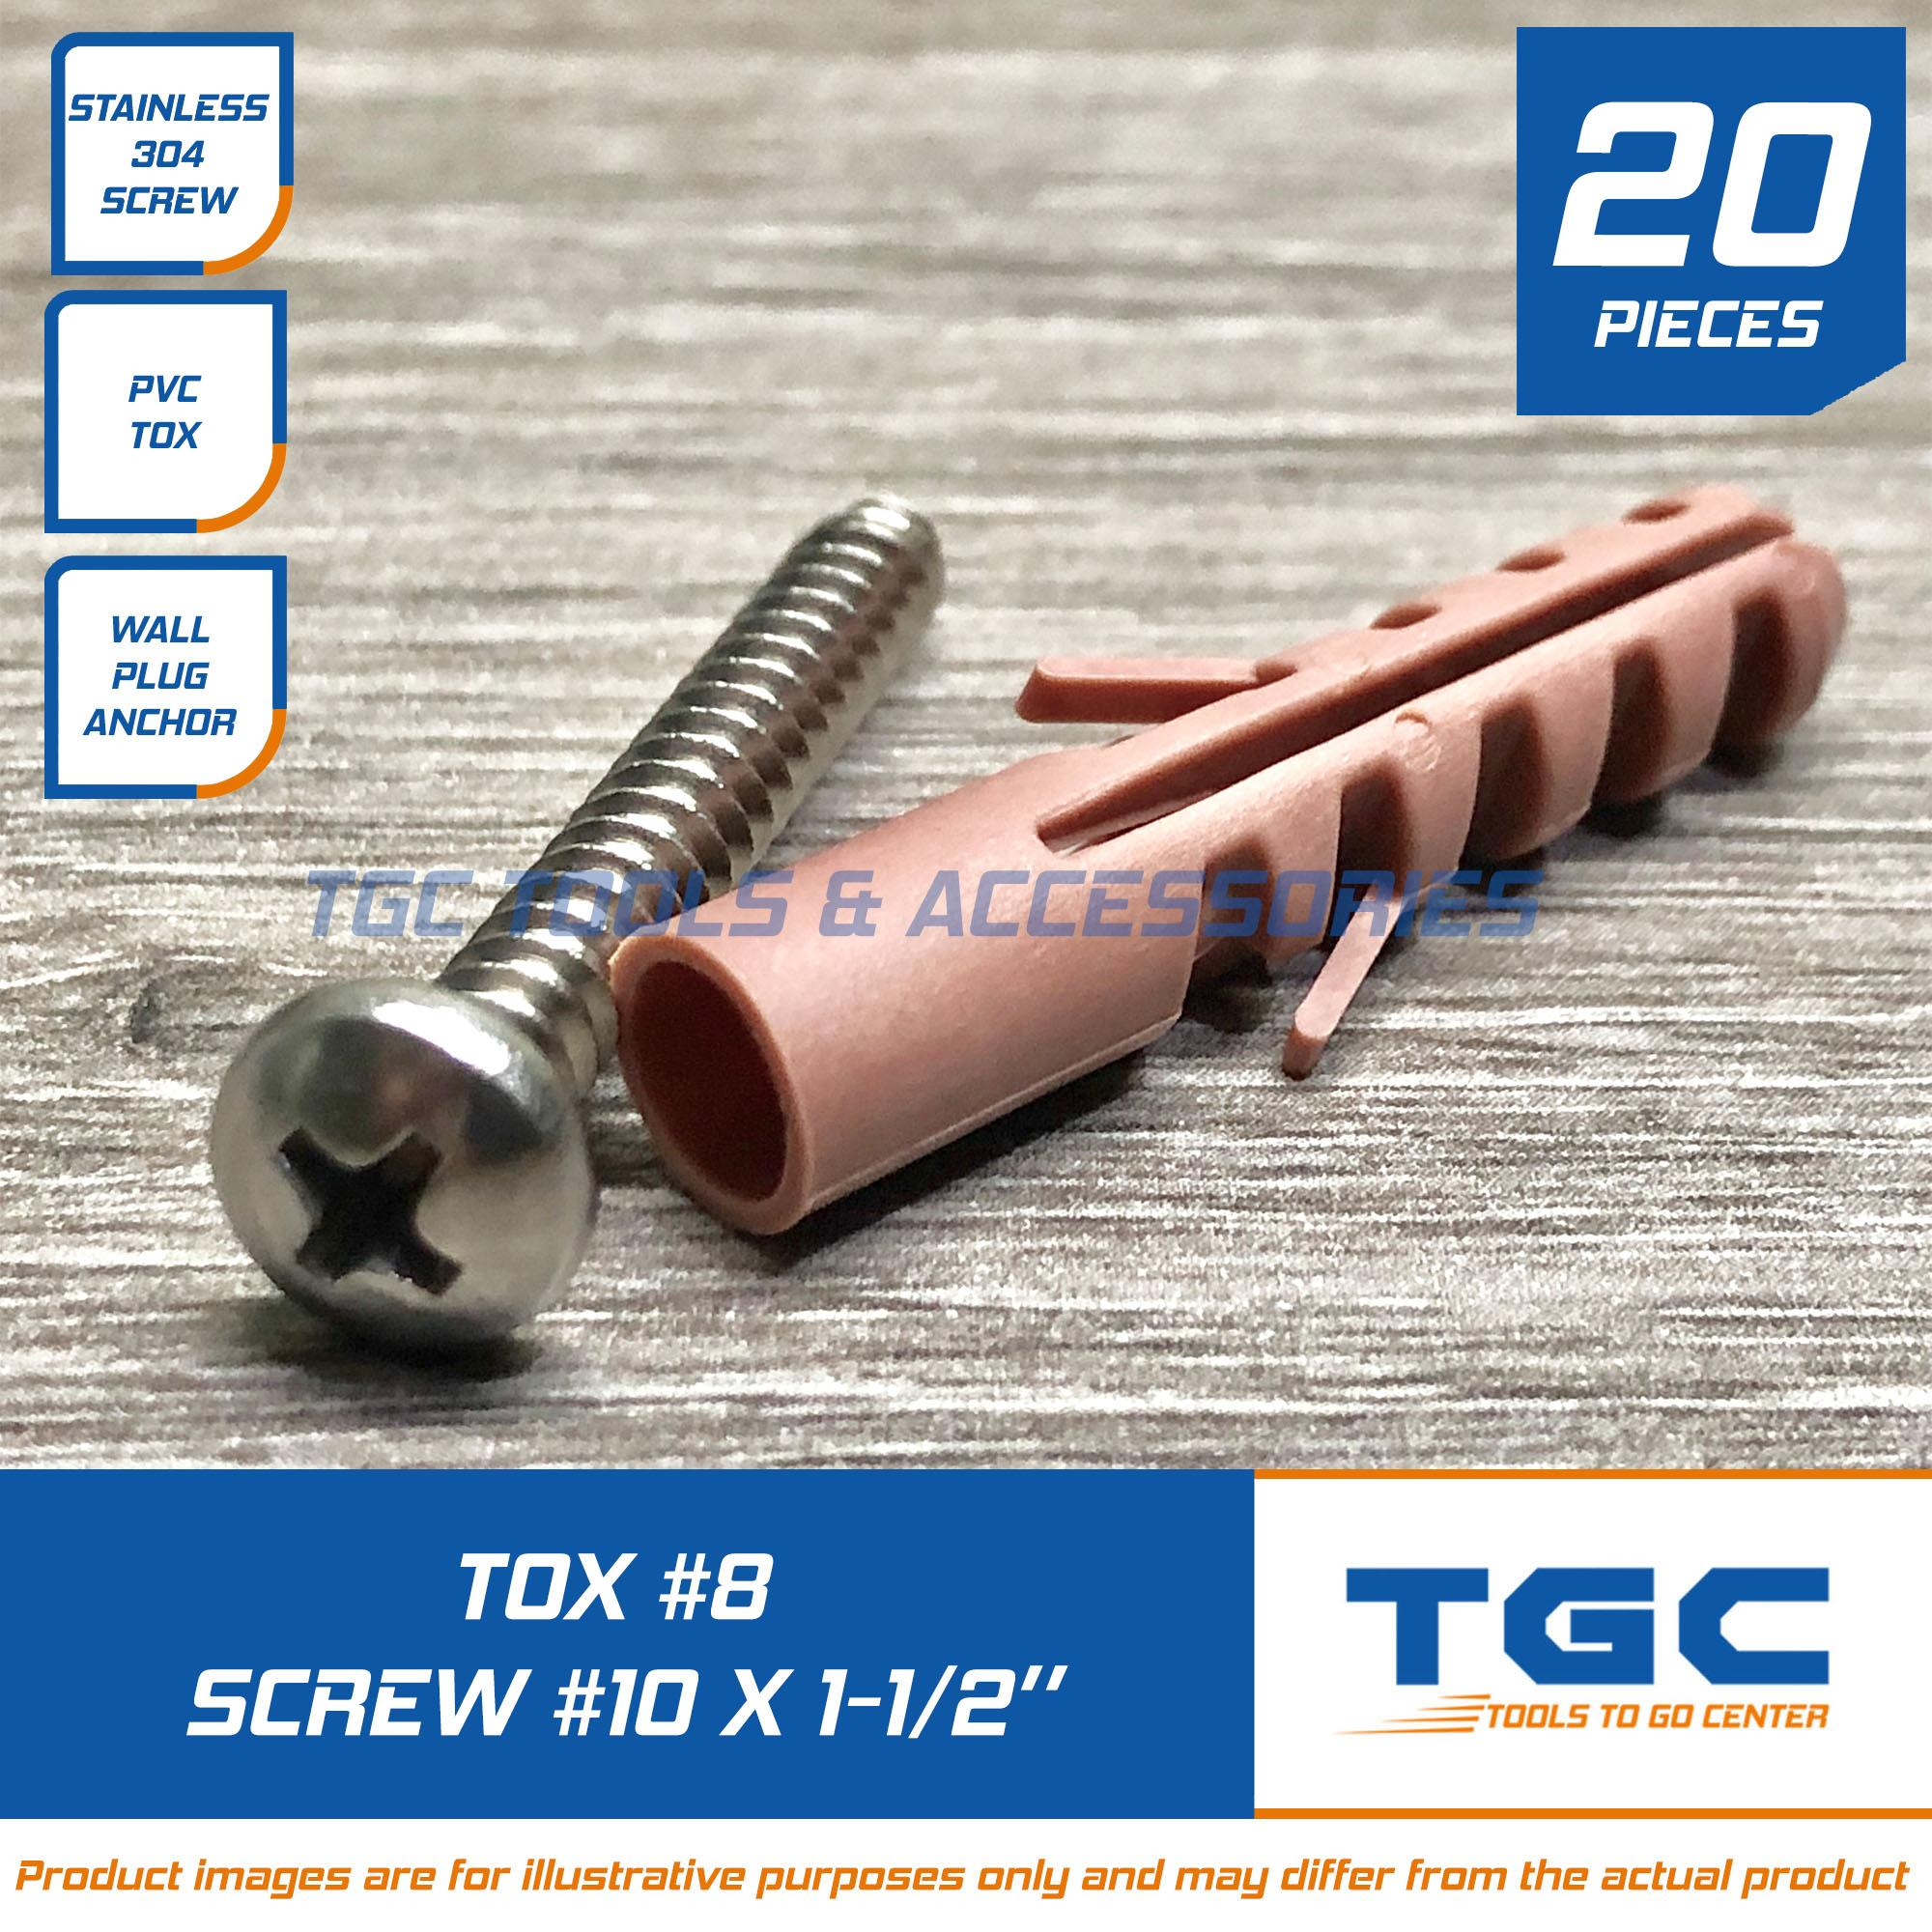 20PCS Tox 8 with Stainless Screw 10 x 1-1/2 inch for Wall Plug Anchor TGC  Plastic Screw Anchor